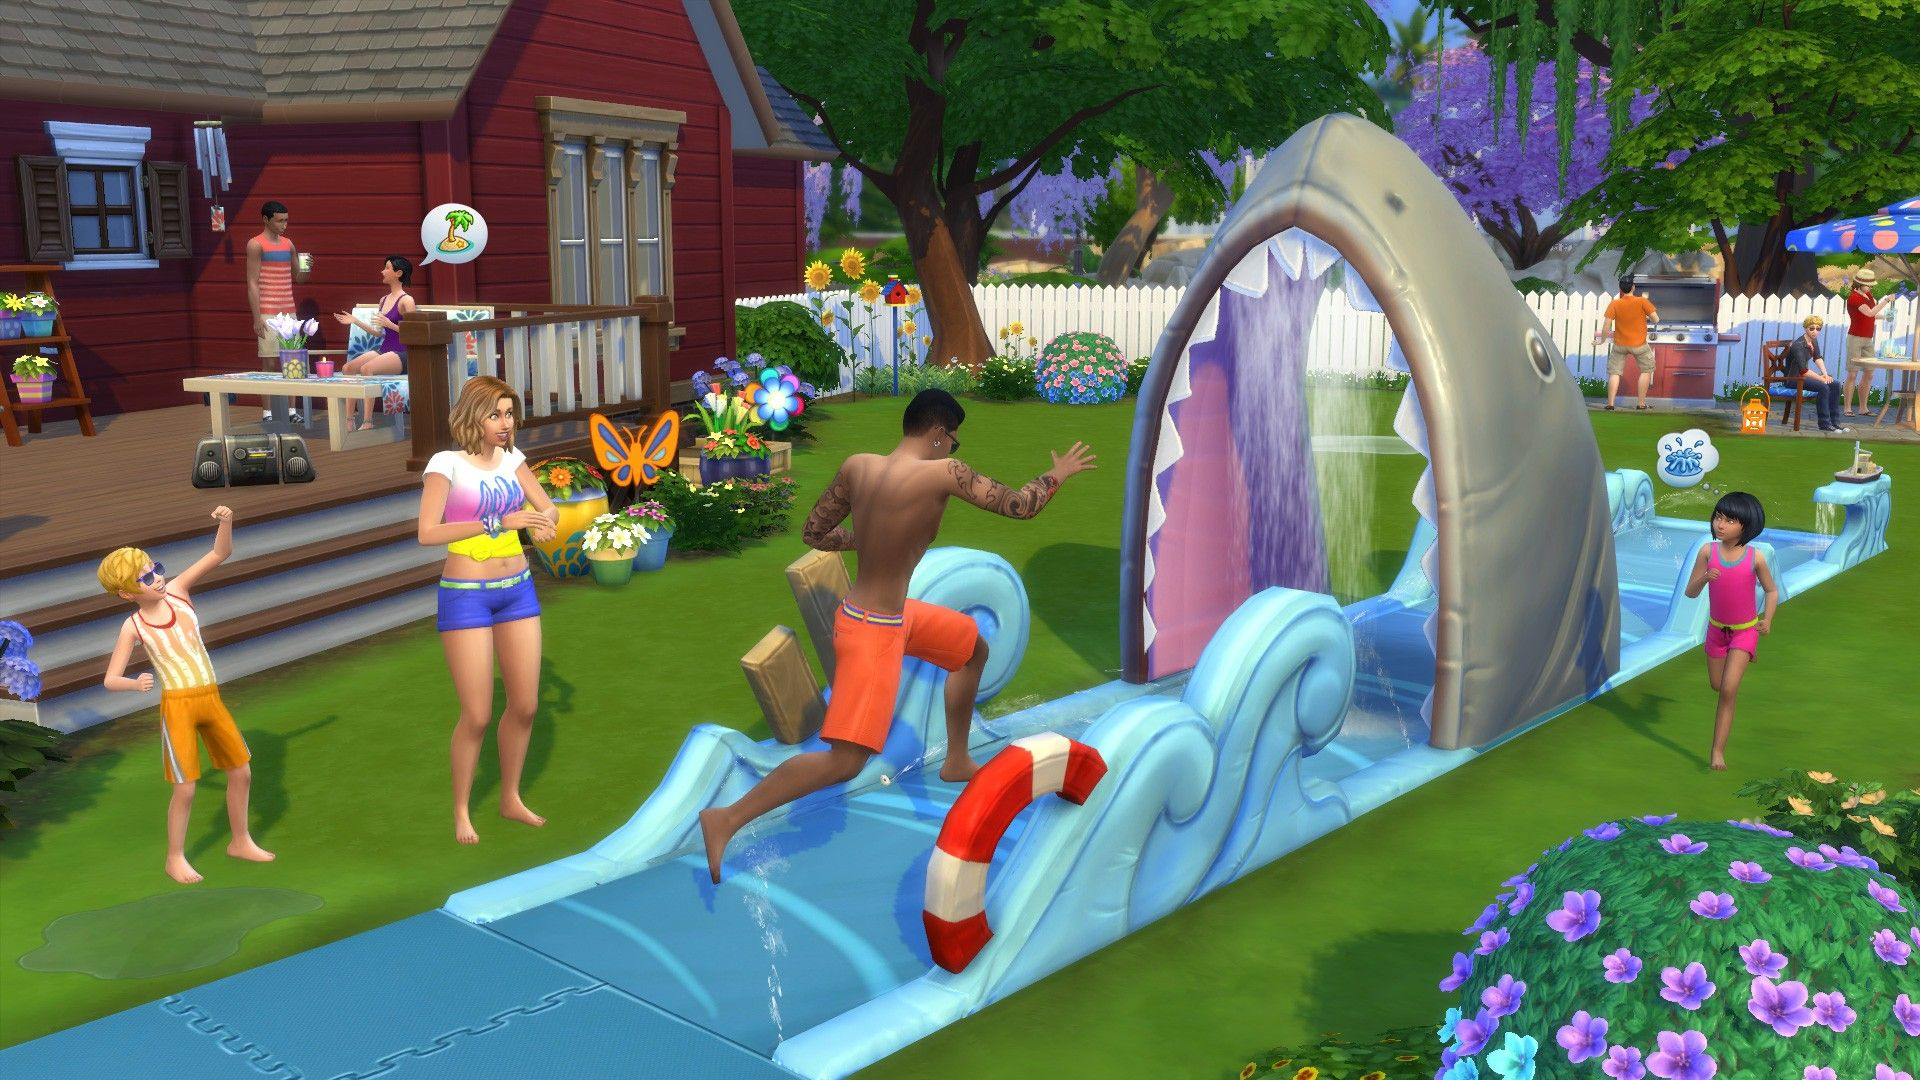 It looks like The Sims 4 is coming to Xbox Sims 4